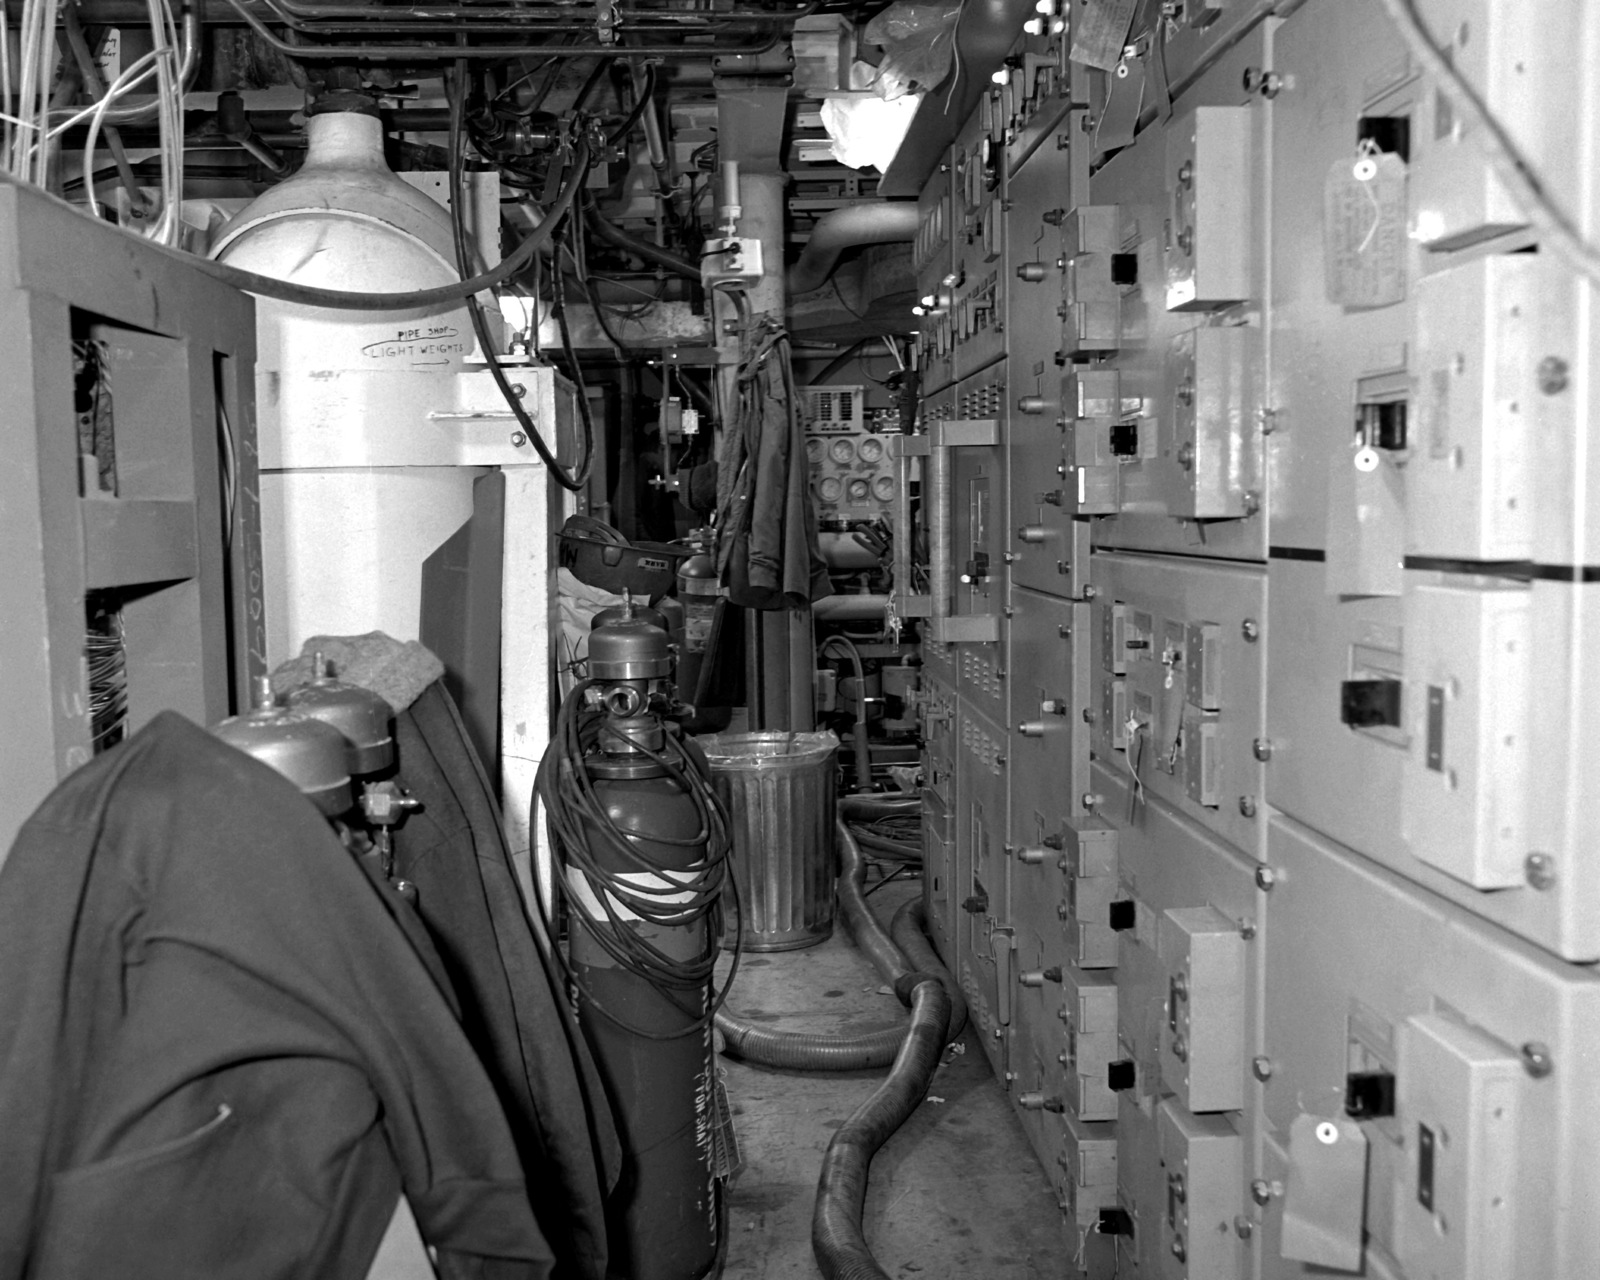 The upper level auxiliary machinery room No. 2 aboard the guided missile frigate ROBERT G. BRADLEY (FFG-49). The ship is at 80 percent completion